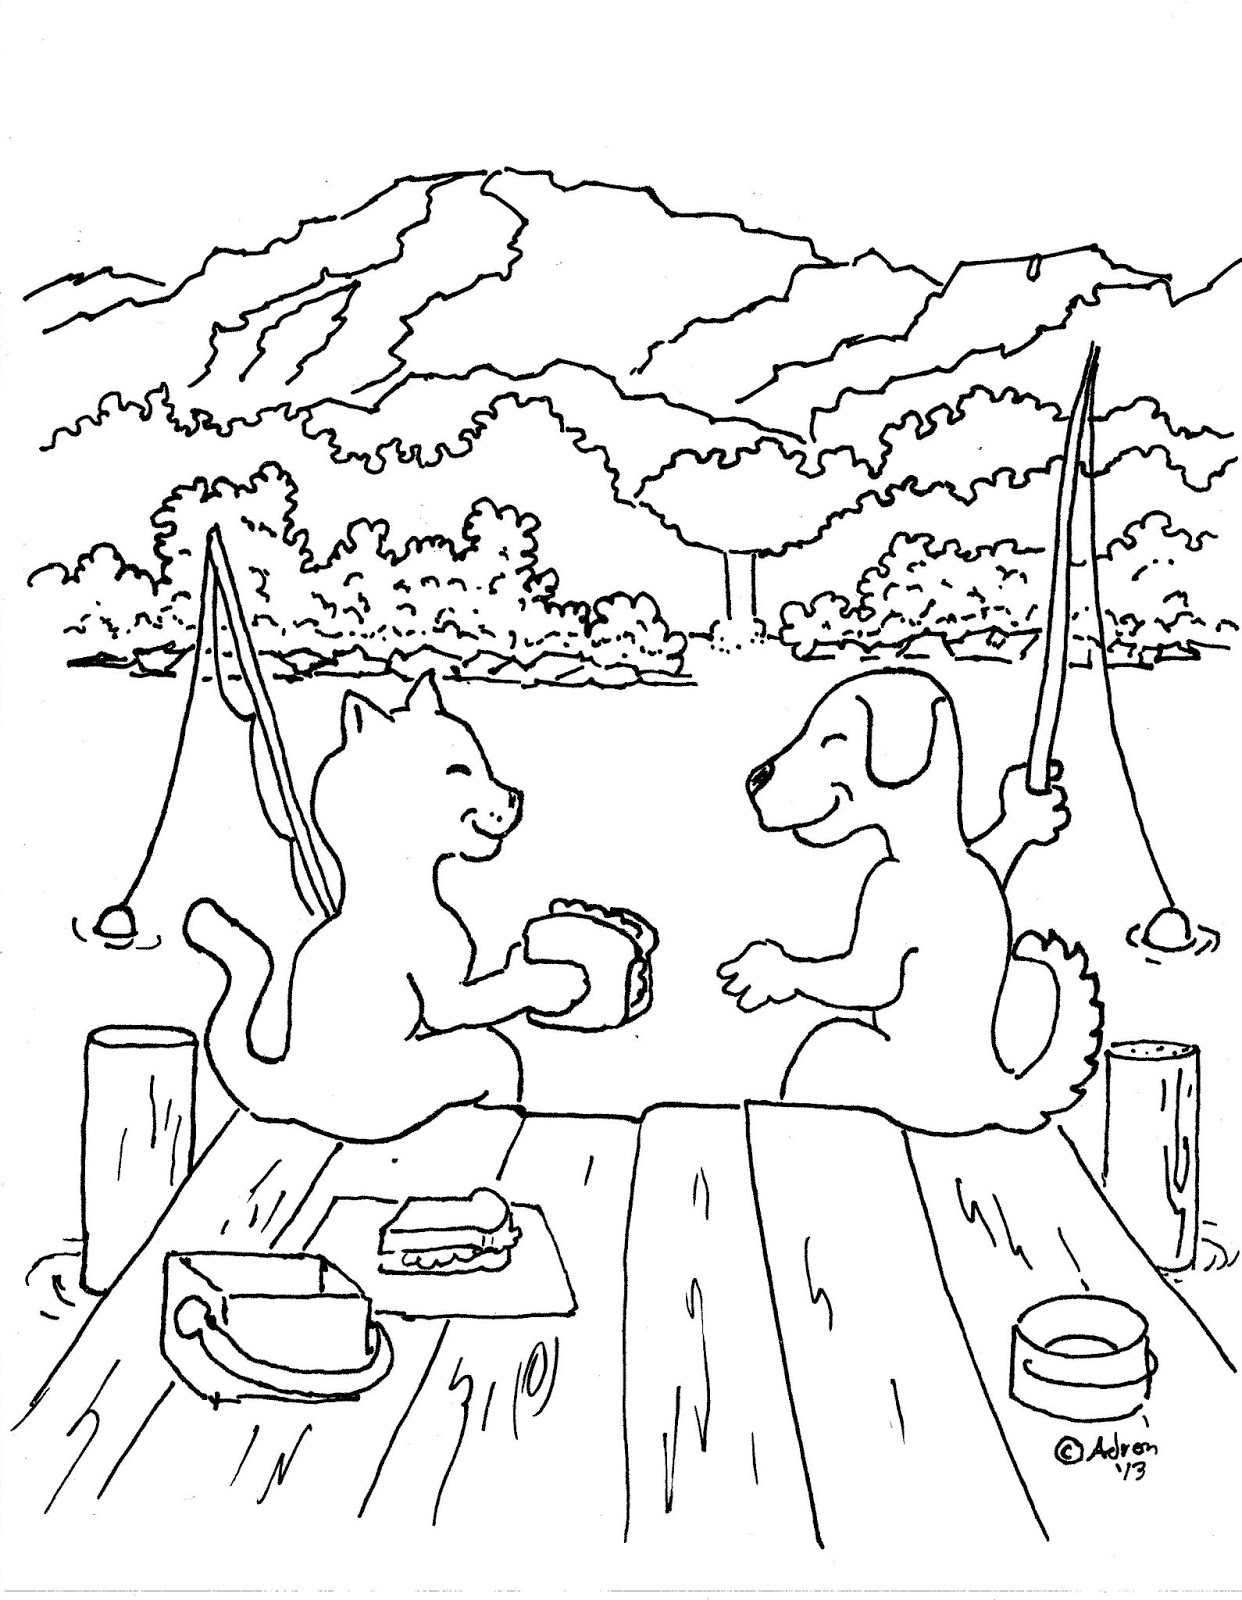 dog and cat coloring pages - photo#22